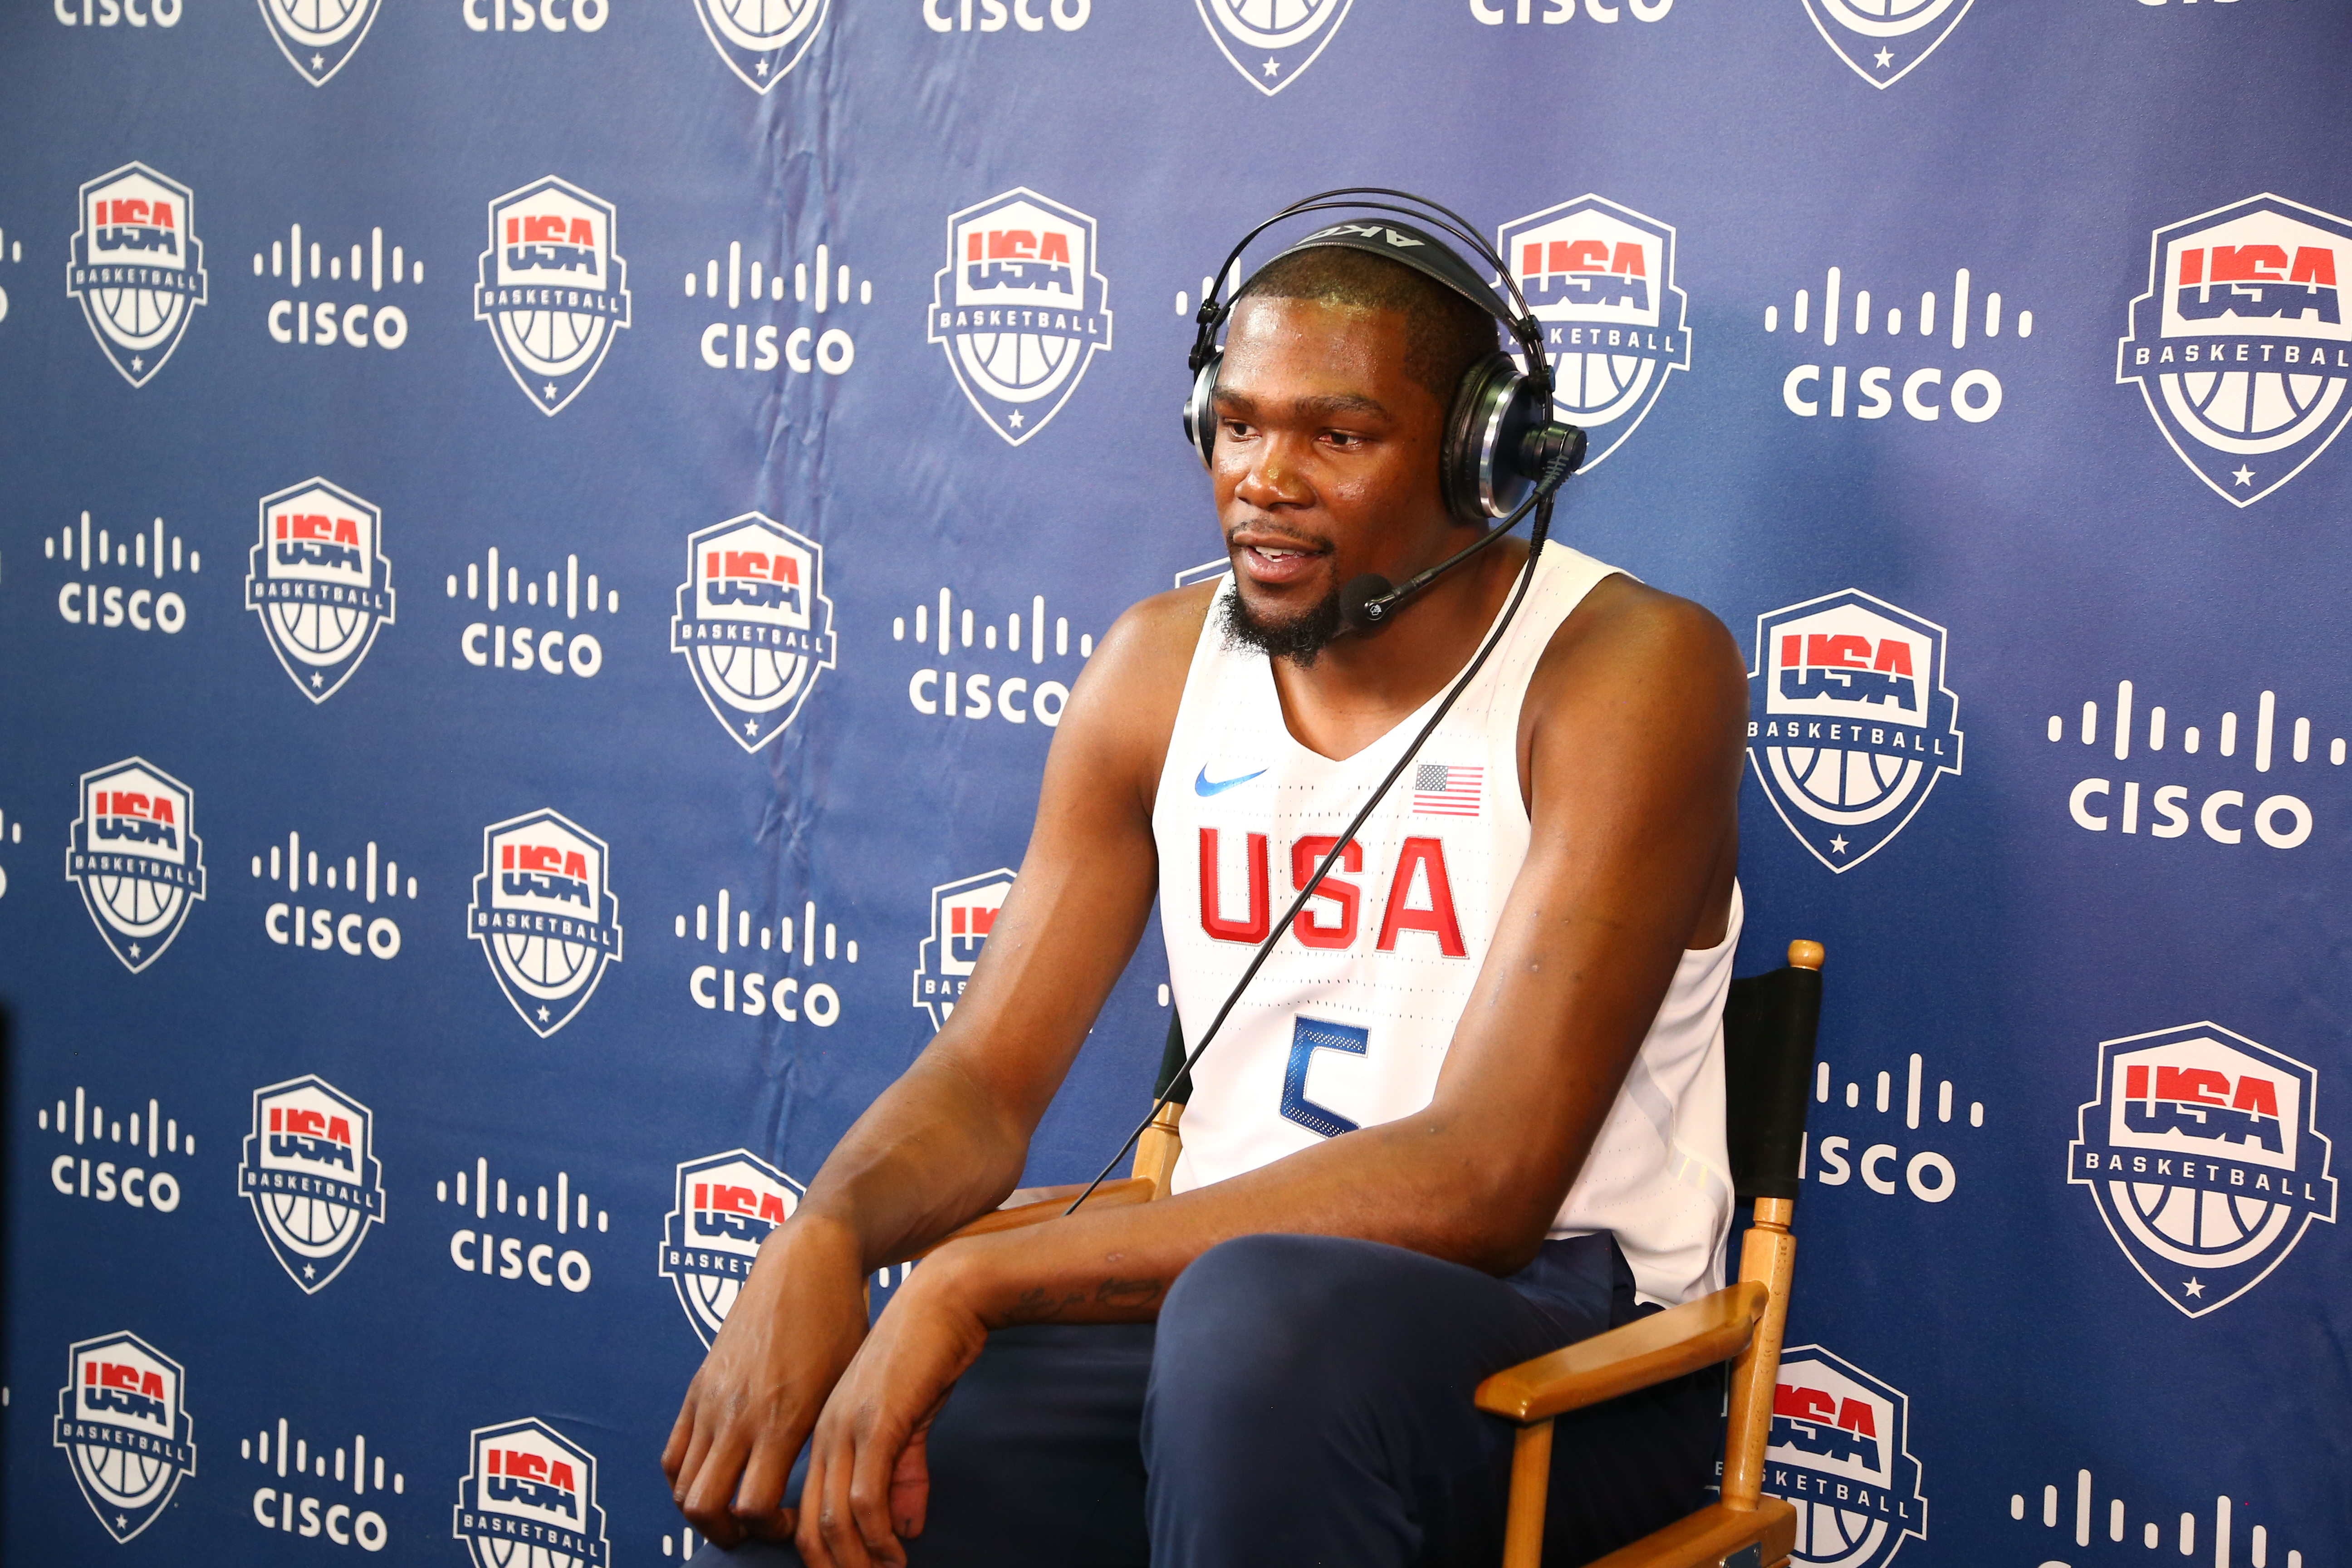 NEW YORK, NY - JUNE 27:  Kevin Durant #5 of the 2016 USA Men's Senior National Basketball Team is interviewed during a press conference at Dunleavy Milbank Center on June 27, 2016 in New York City. (Photo by Nathaniel S. Butler/NBAE via Getty Images)